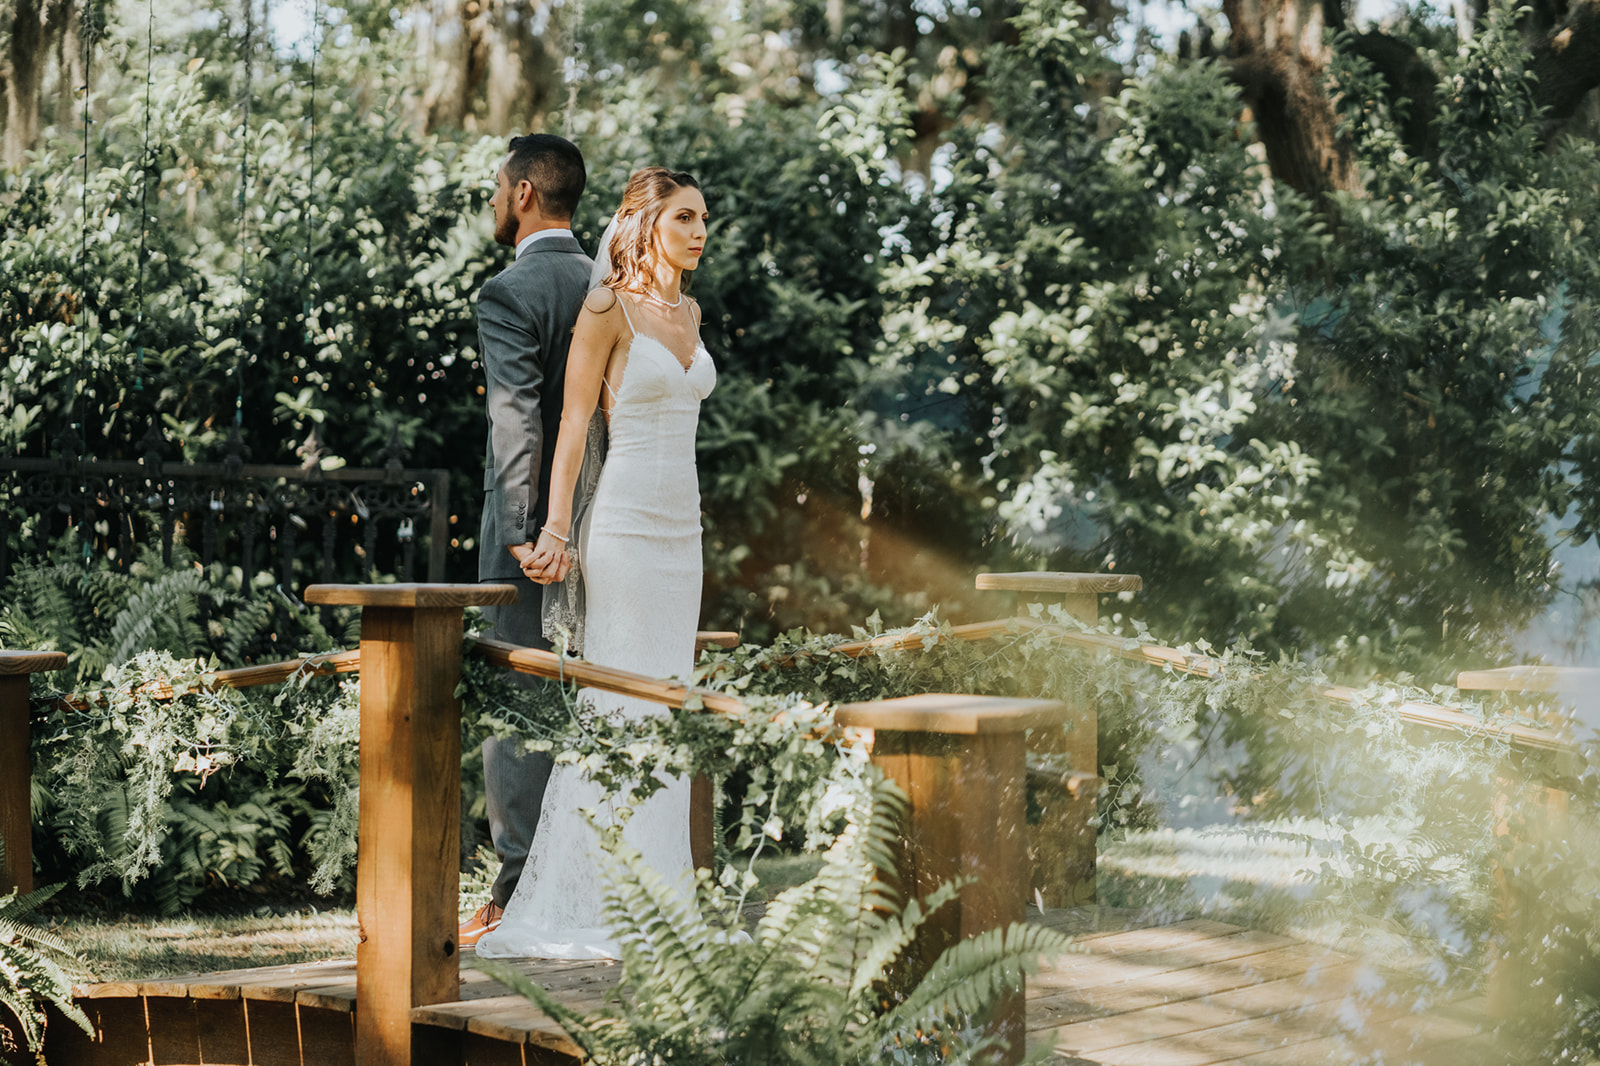 Jacob_Darrian_Bakers Ranch Wedding (11).jpg